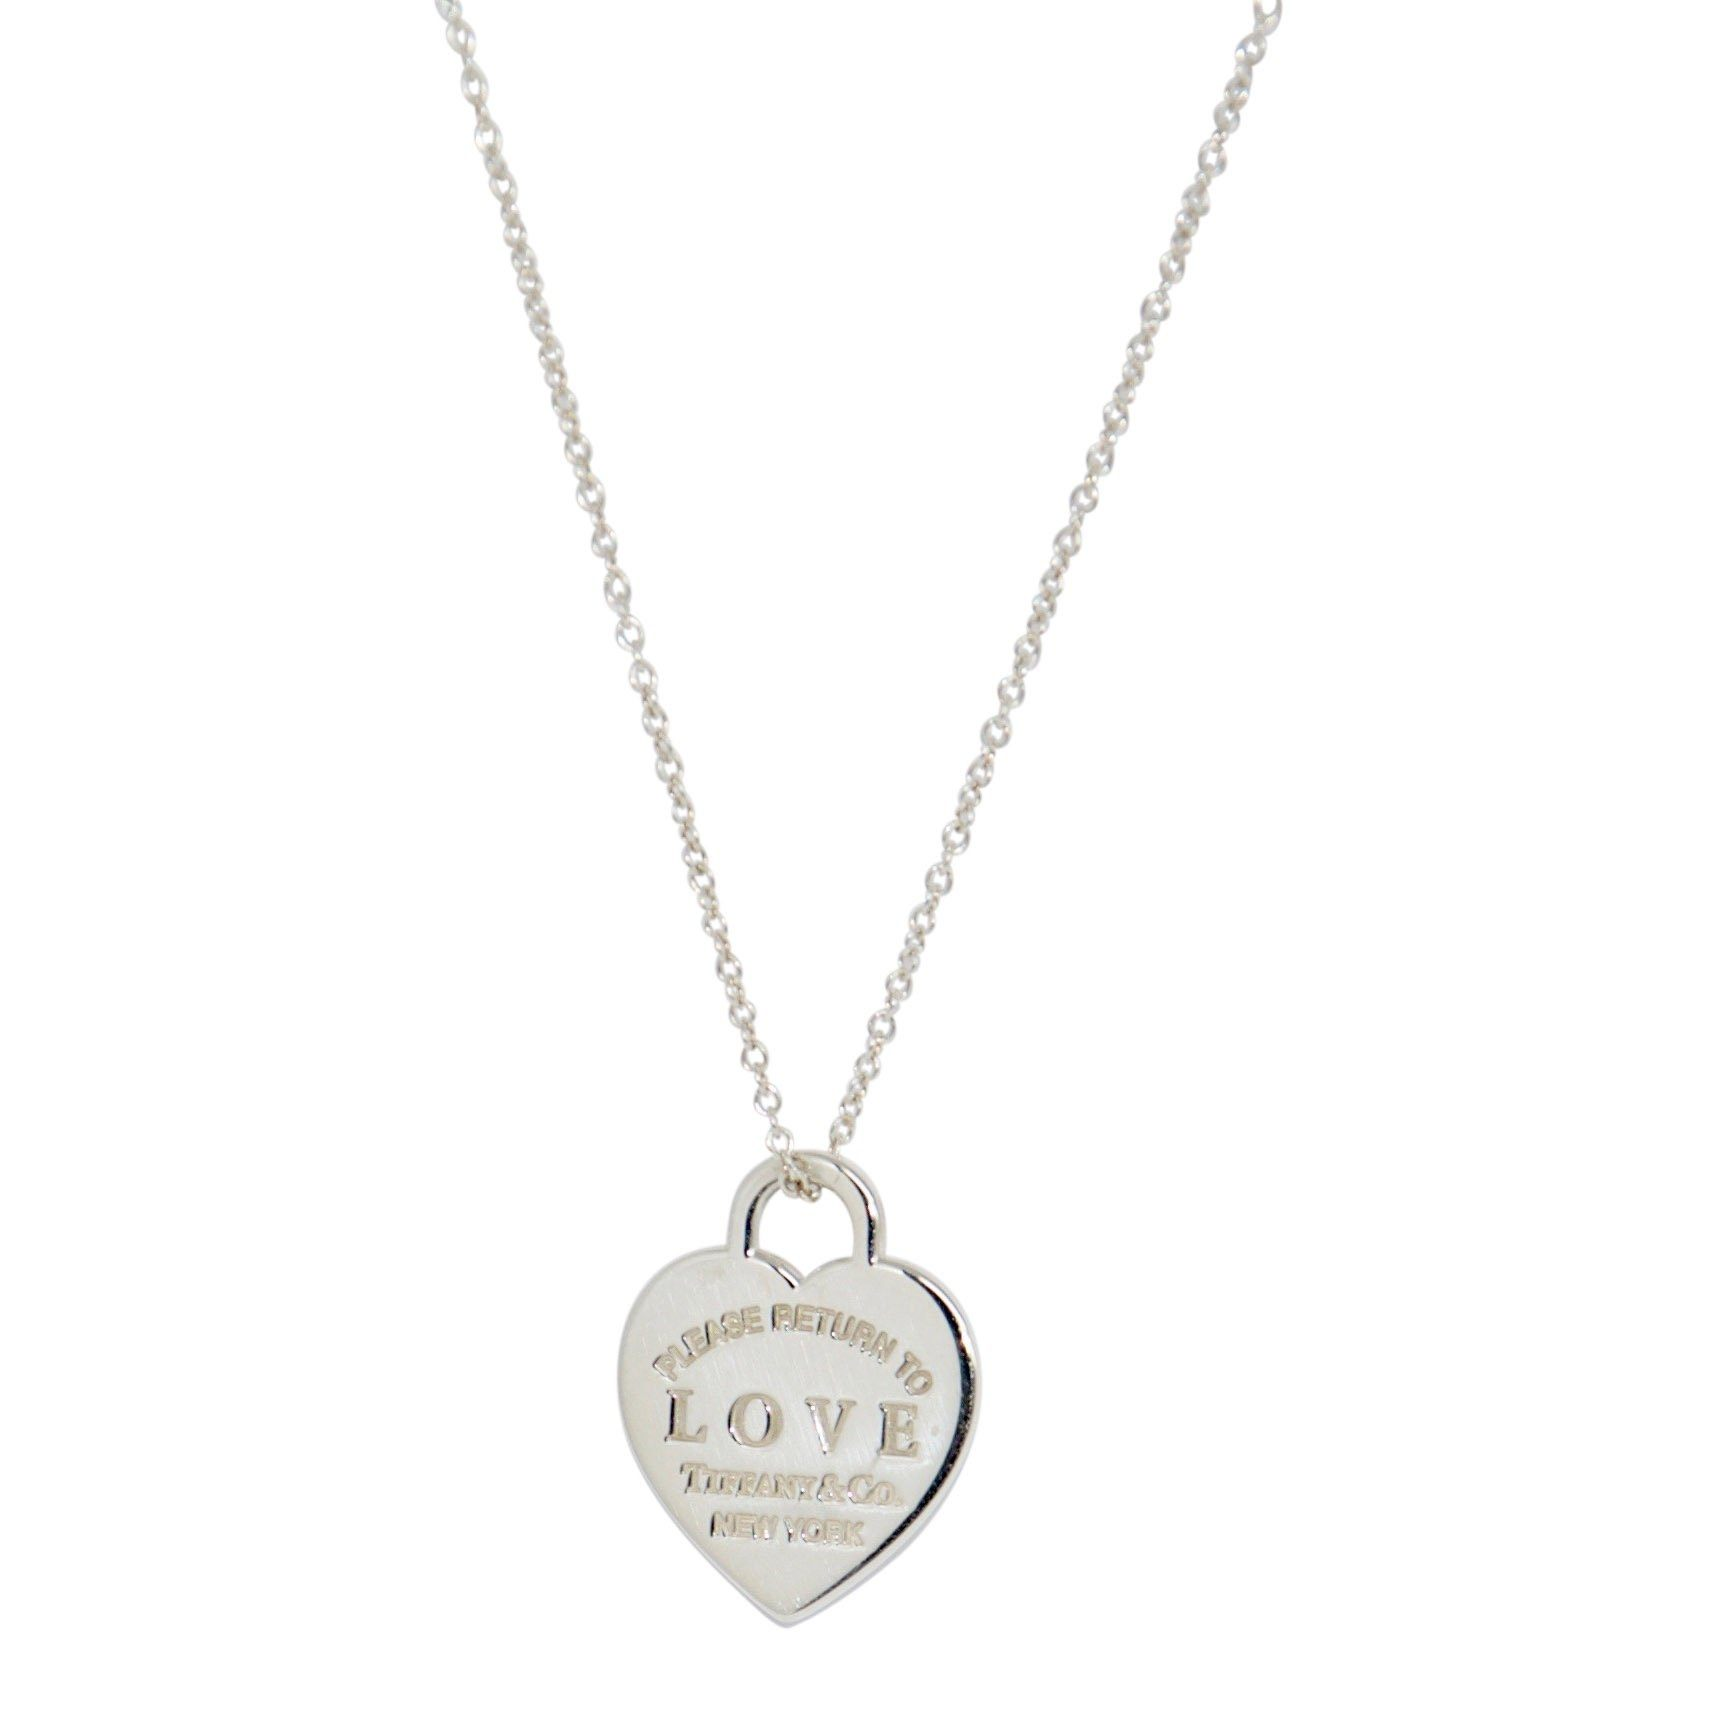 3358e7ae8 Tiffany & Co. Return to Tiffany Love Heart Tag Pendant Necklace with Blue  Enamel Necklaces ...